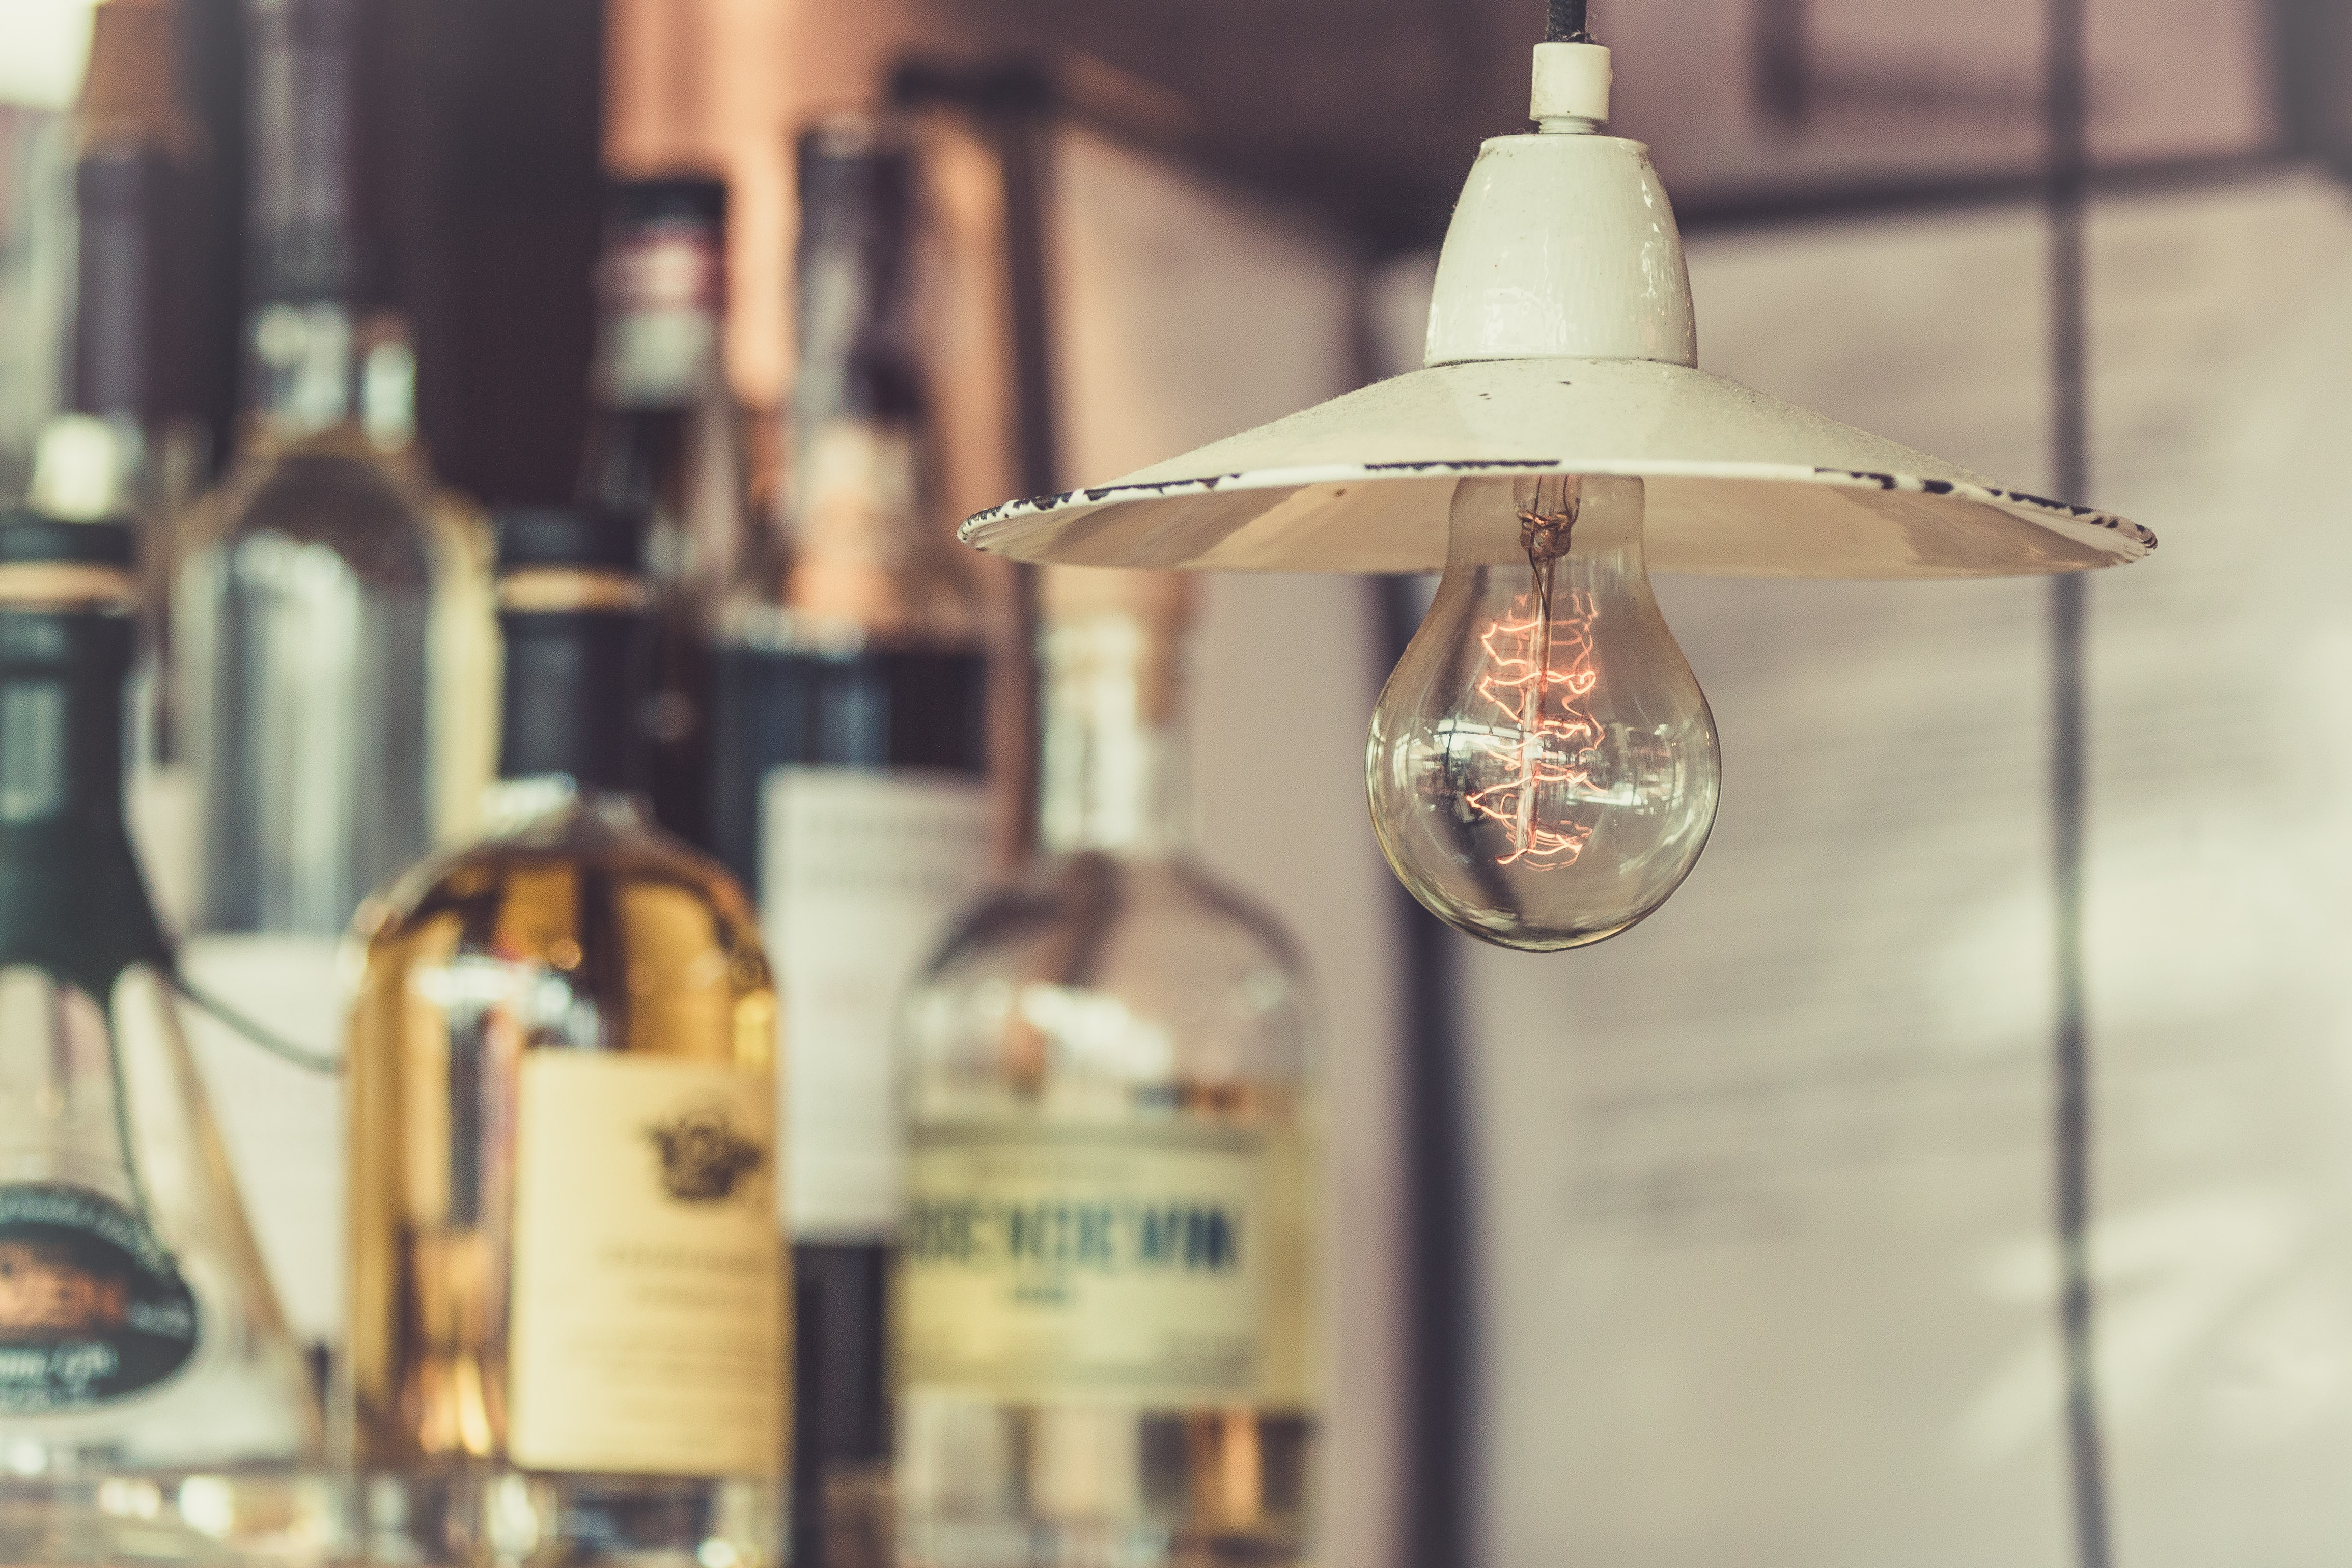 A macro view of a light bulb under a light pendant with alcohol behind it in Torvehallerne